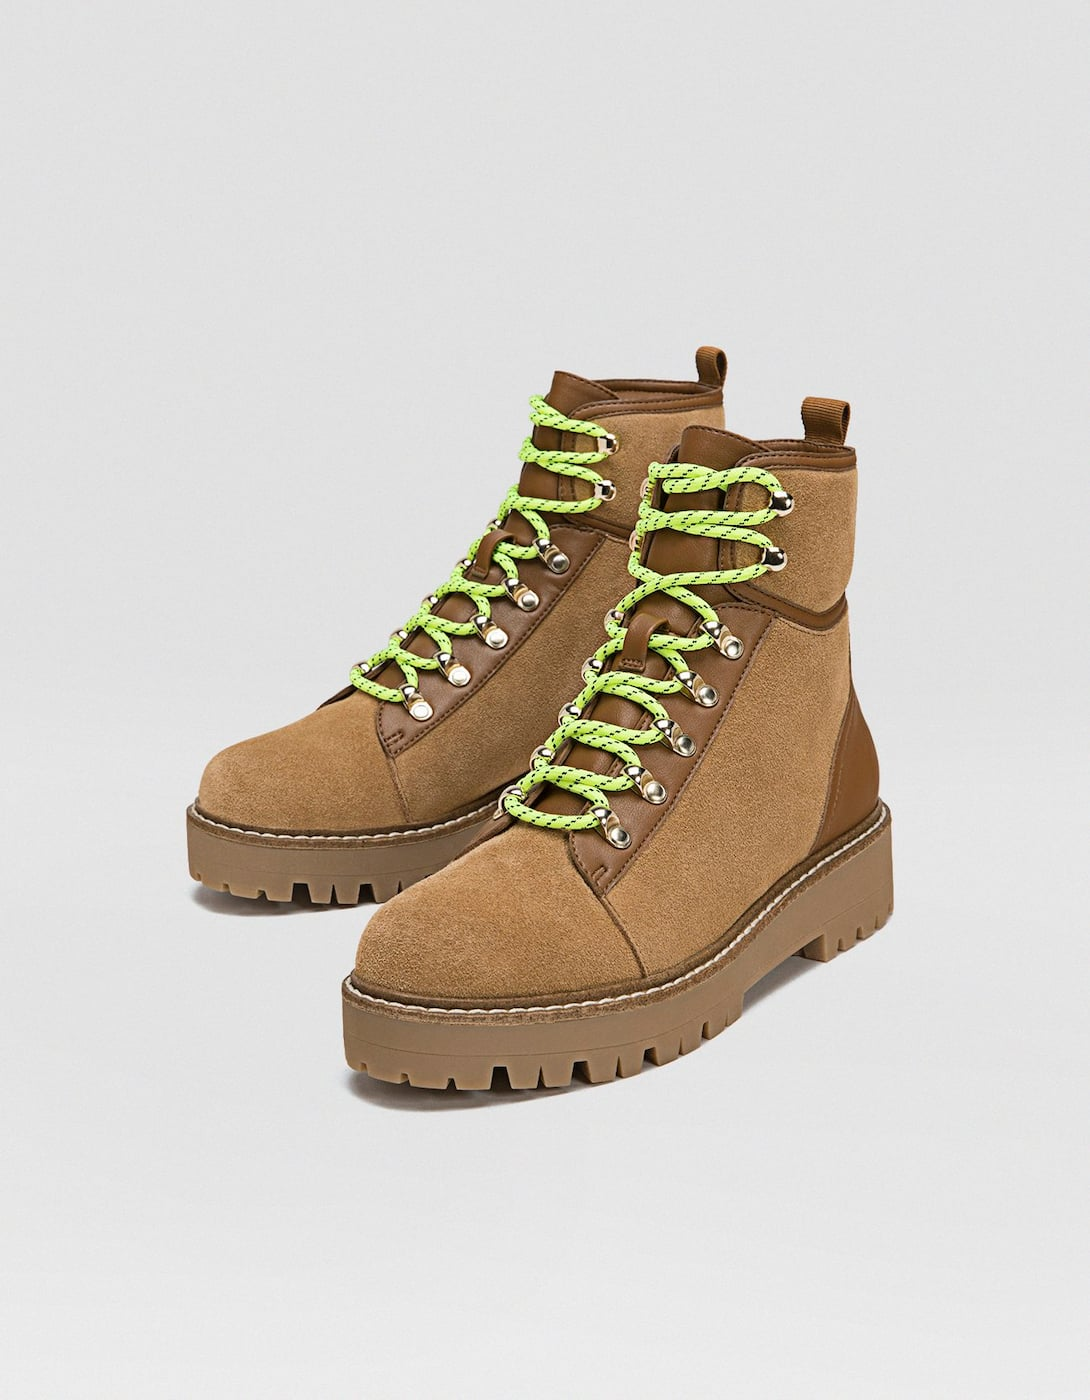 0e51f44a166 REF. 2947/041-I2018 | Composition and care. LEATHER track sole mountain  boots. Heel 3.5 cm